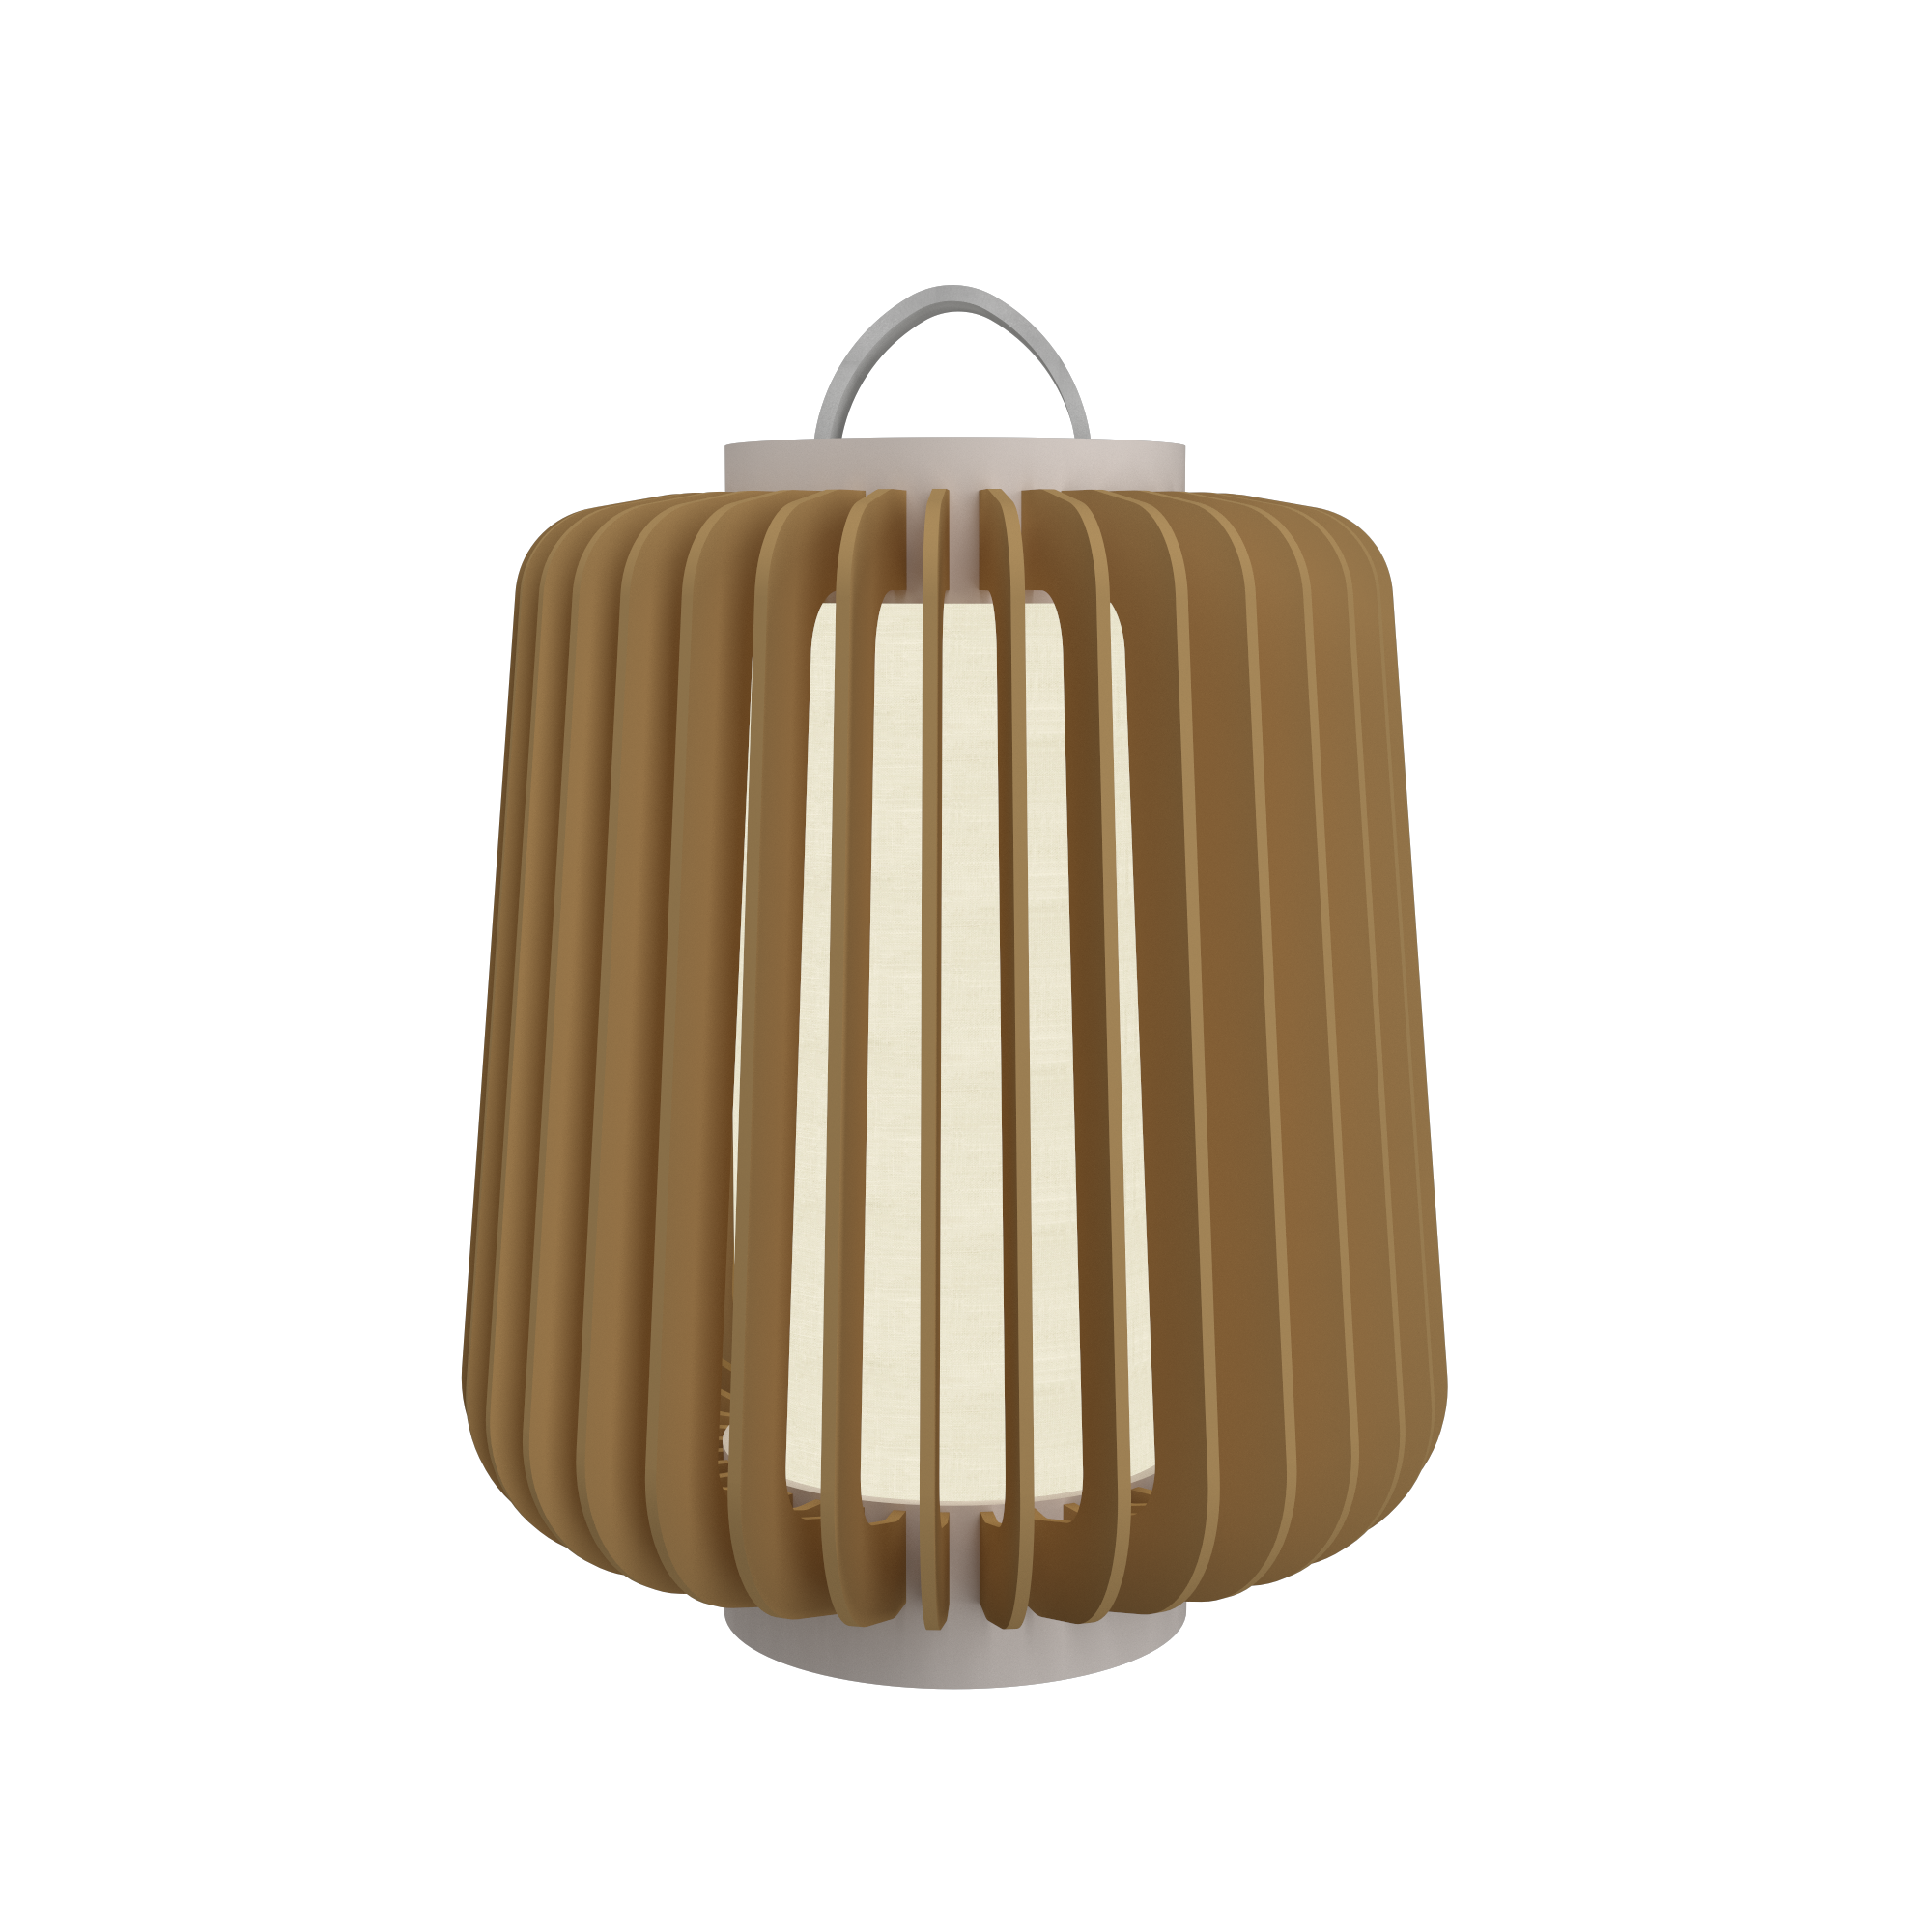 Floor Lamp Accord Stecche Di Legno 3035 - Stecche Di Legno Line Accord Lighting | 27. Gold